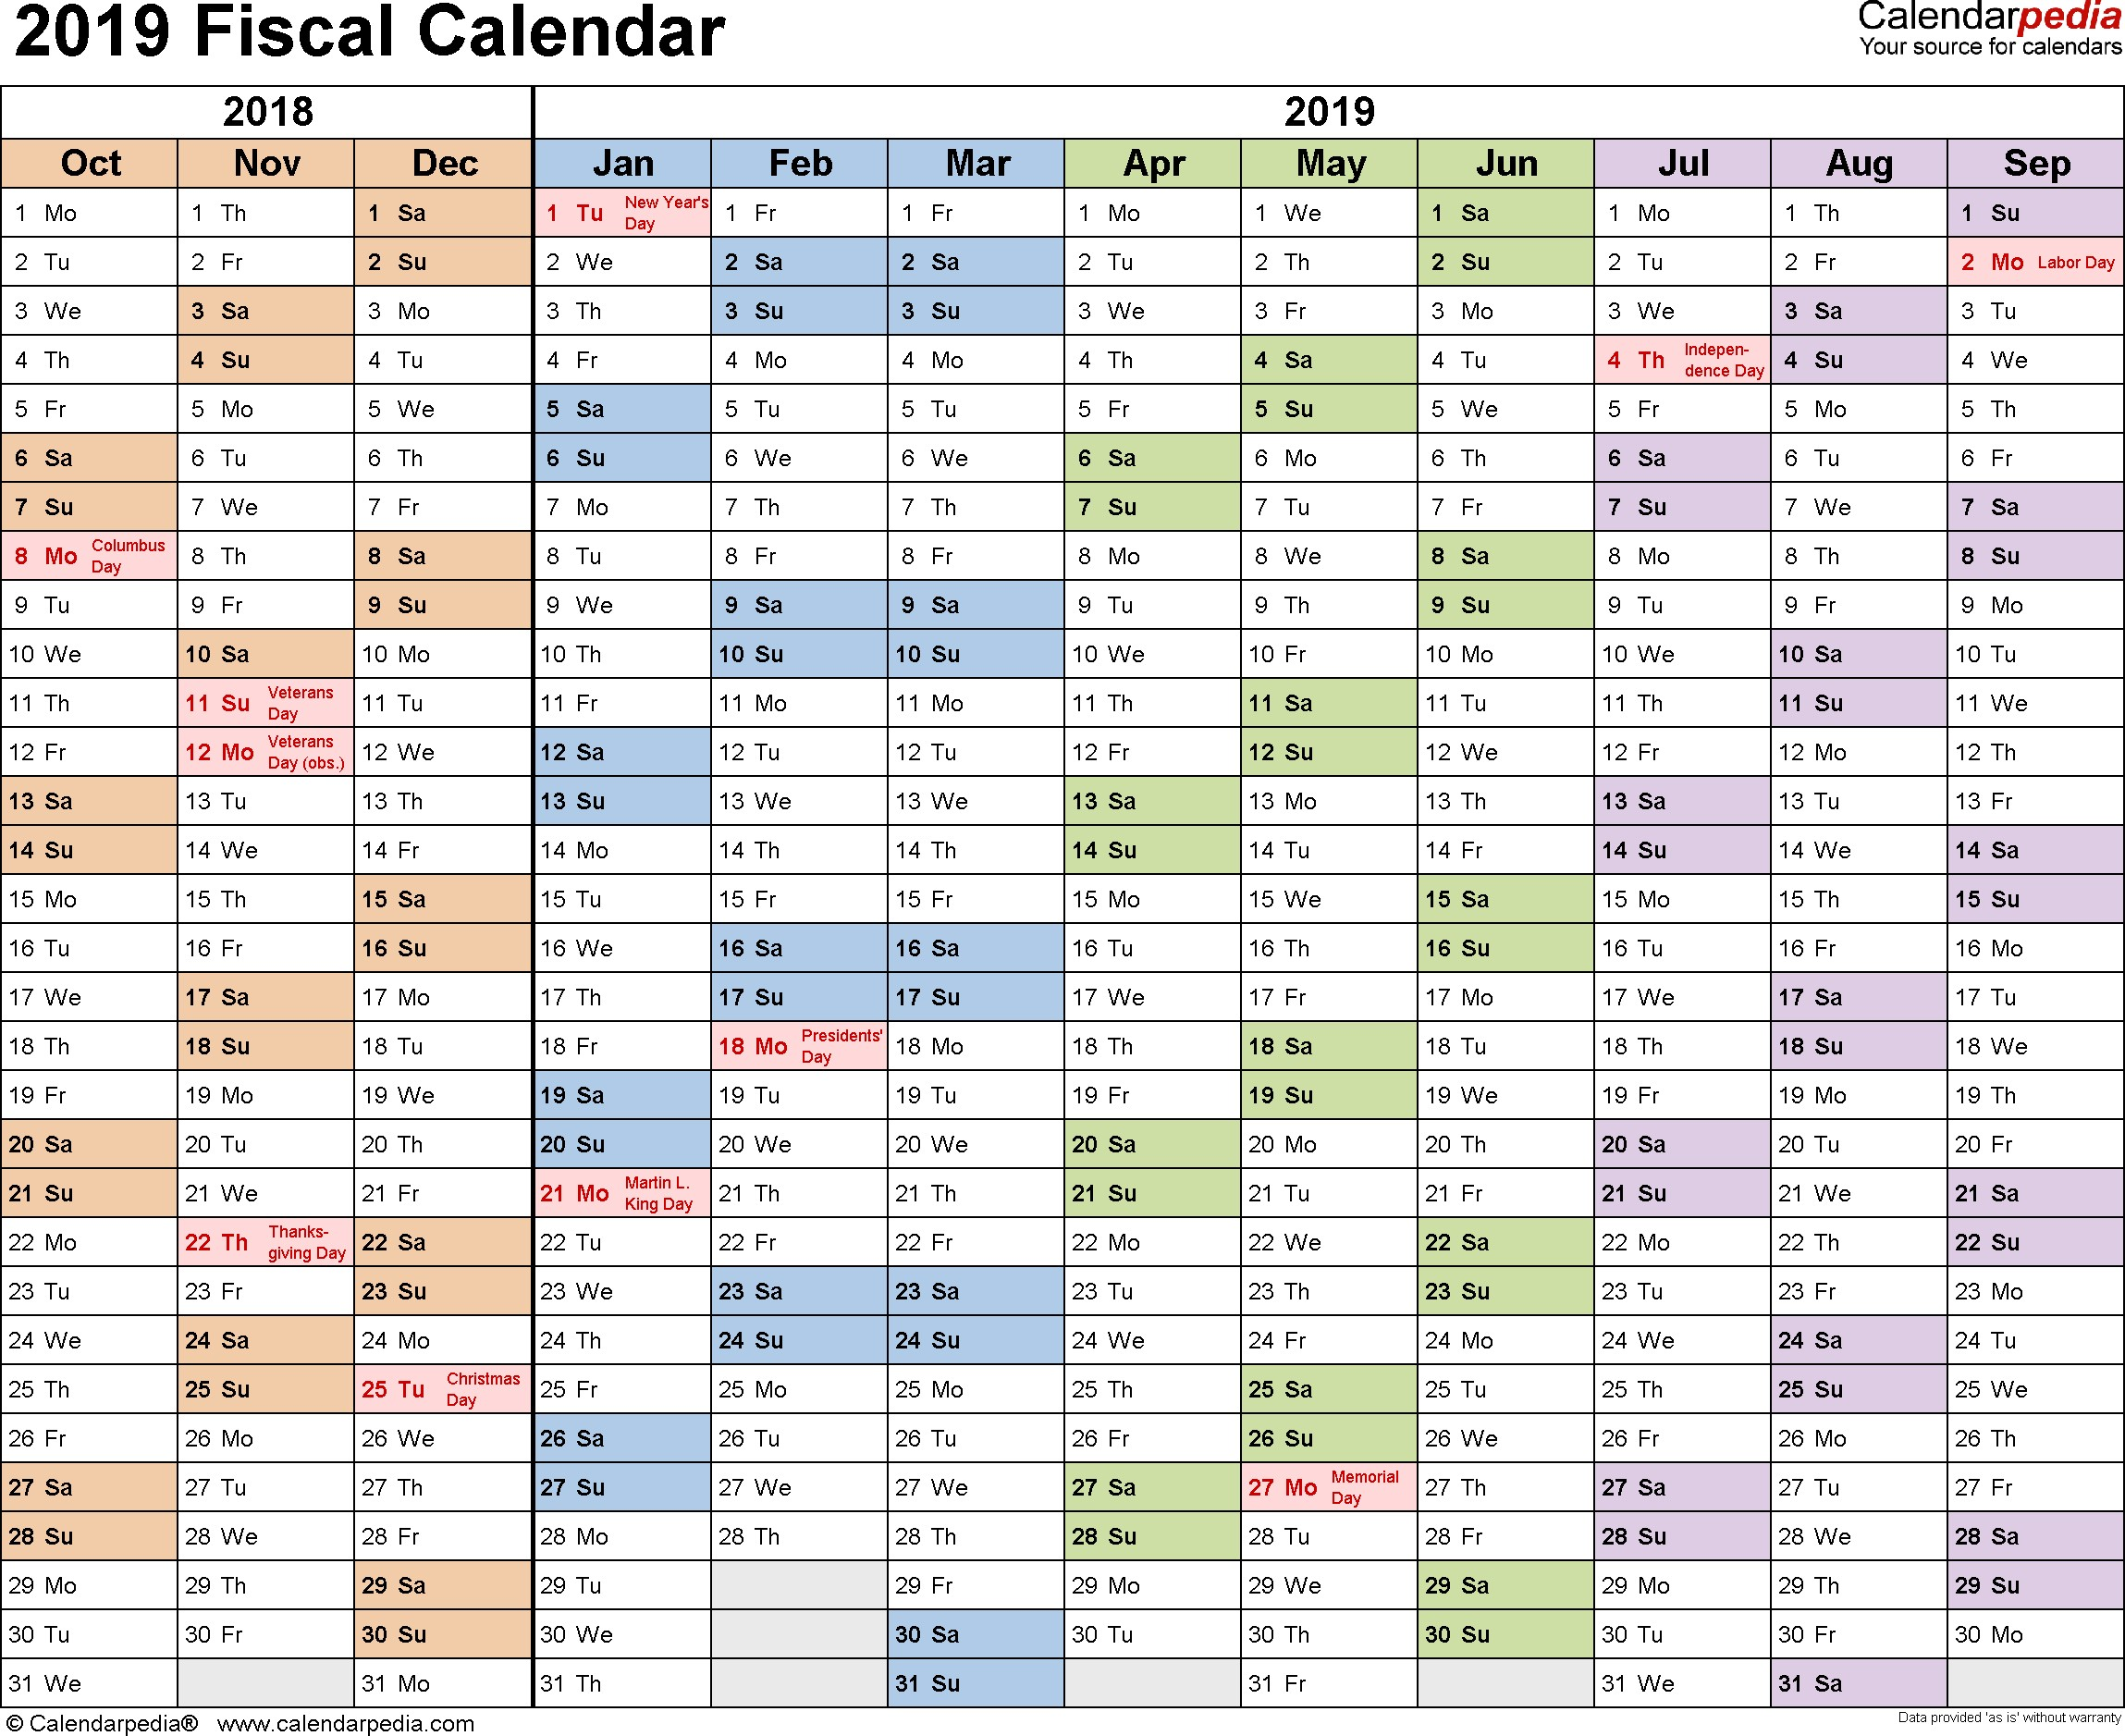 March Calendar Starting Monday Recientes Fiscal Calendars 2019 as Free Printable Word Templates Of March Calendar Starting Monday Más Caliente Calendar January 2018